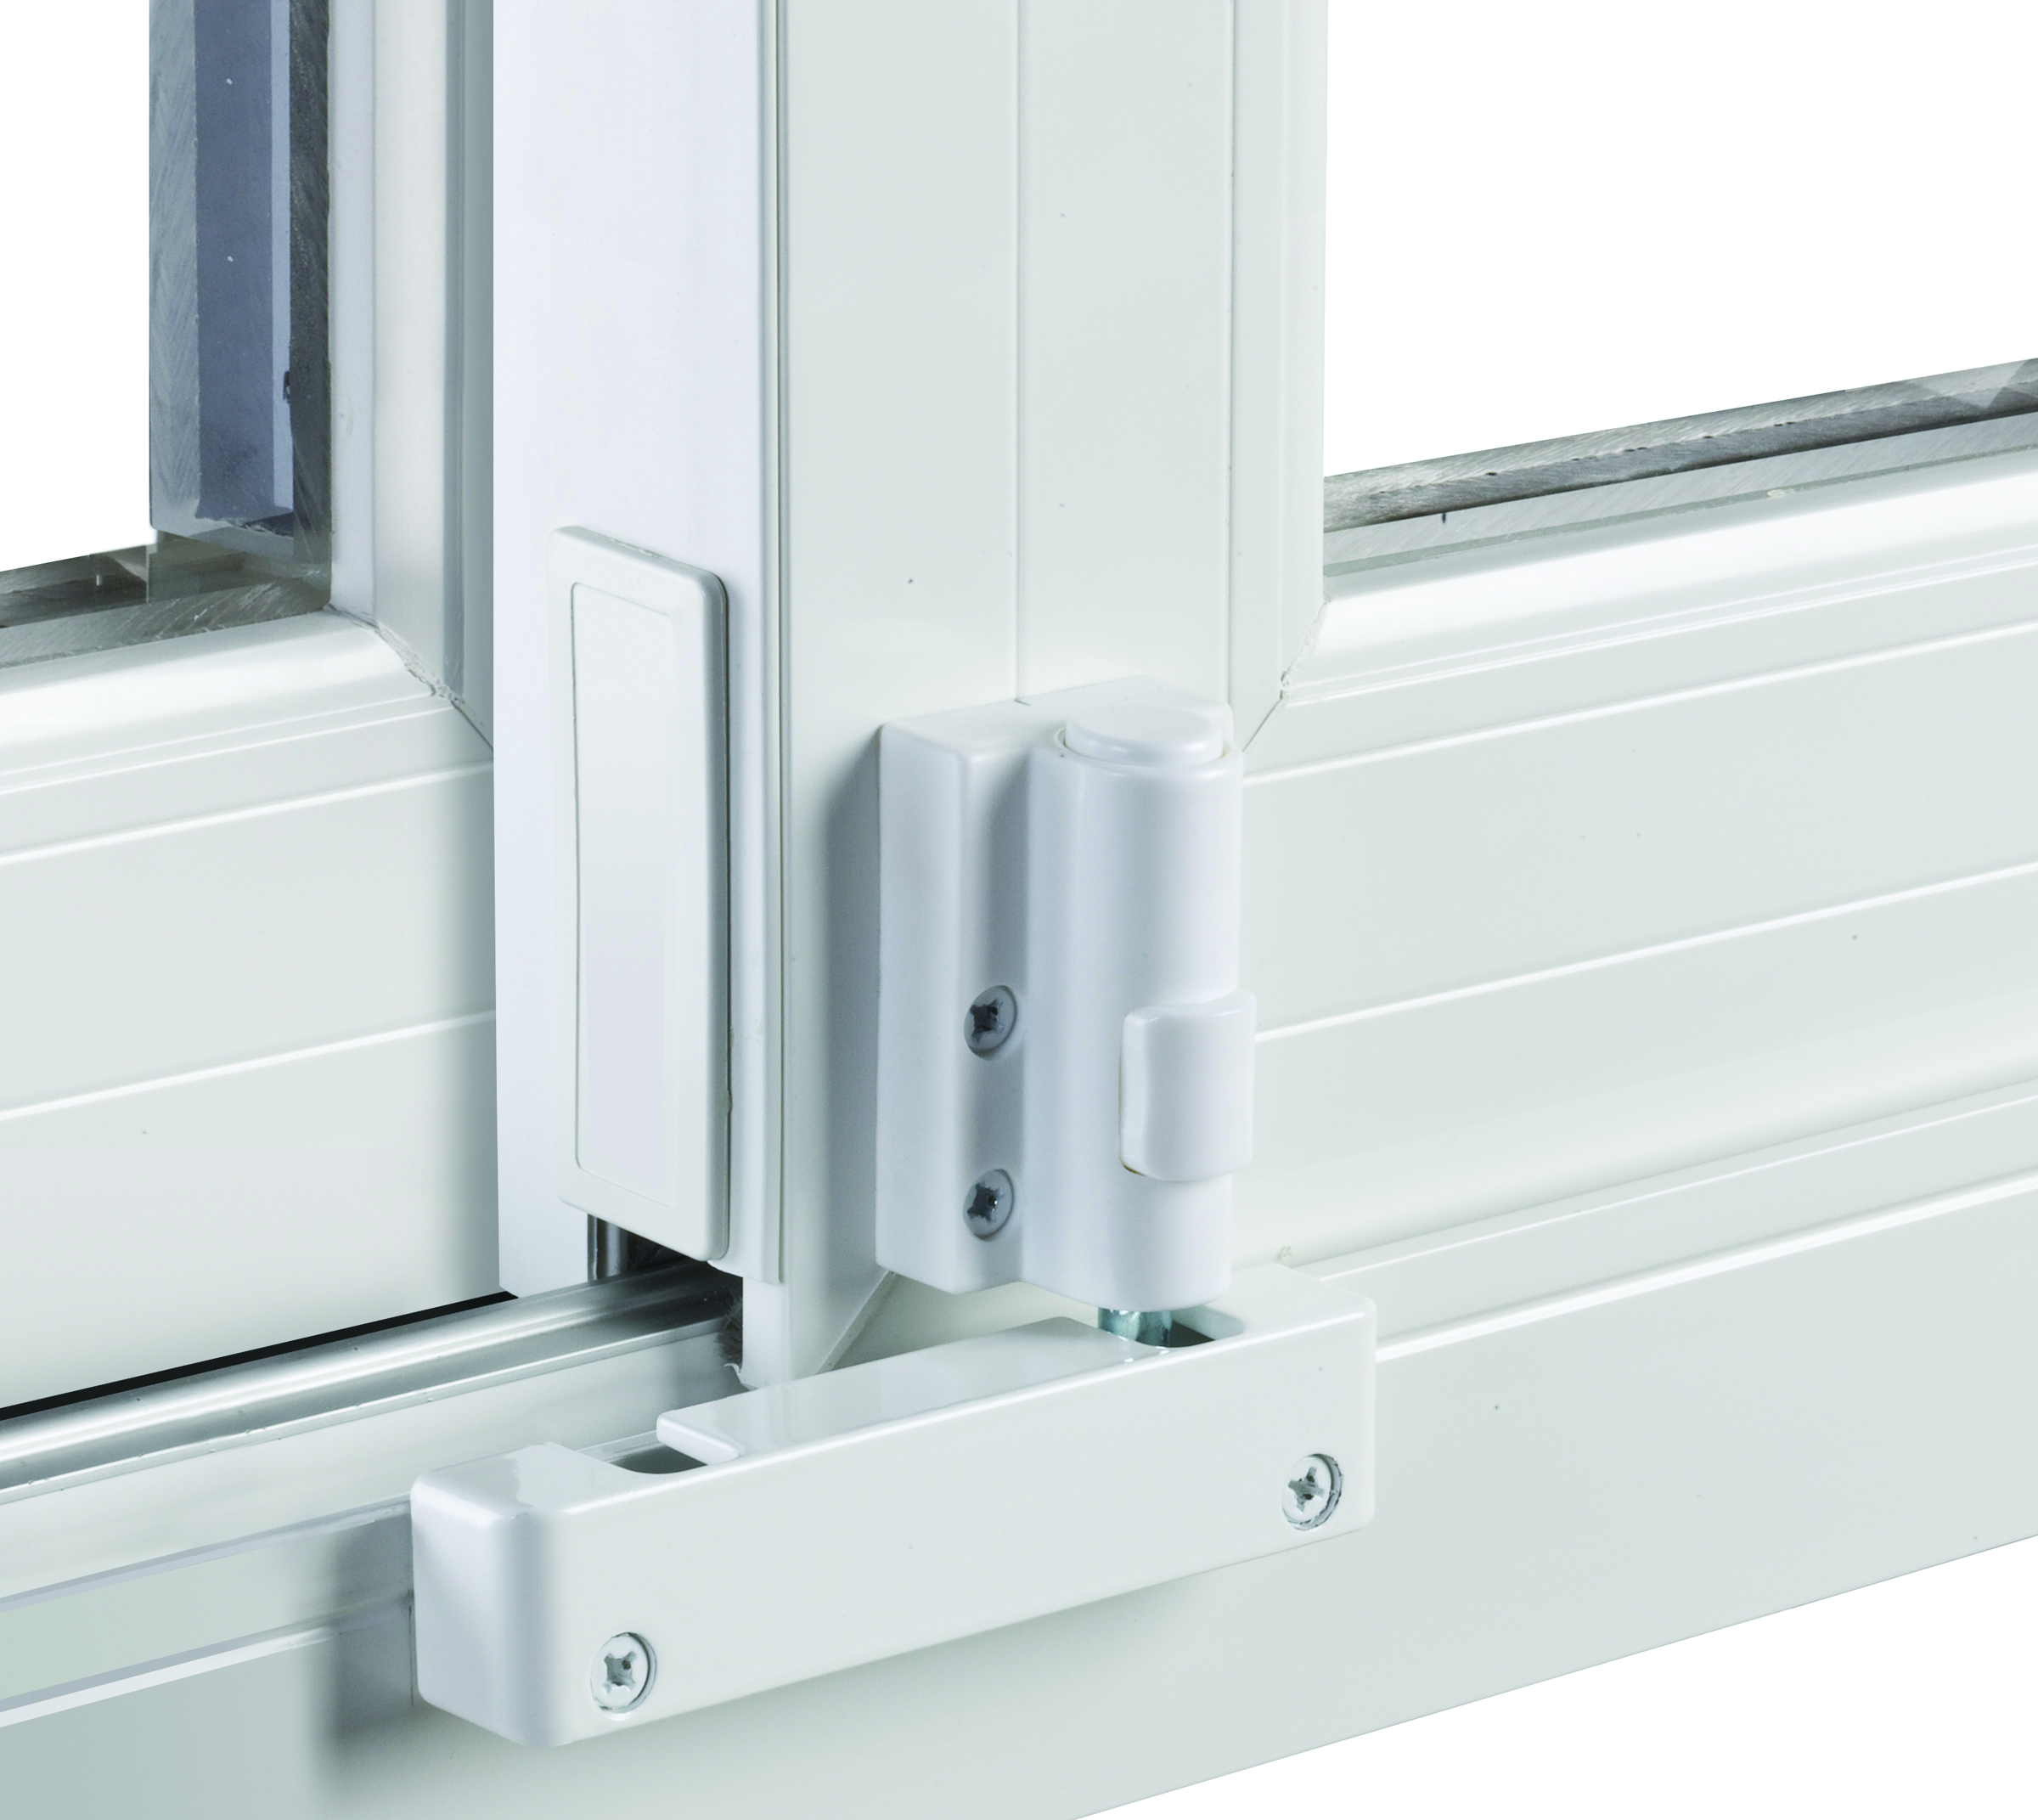 High Quality Safety Latches On Windows And Doors, Like This Patio Door Foot Lock, Is  Another Way To Safeguard Children And Pets.